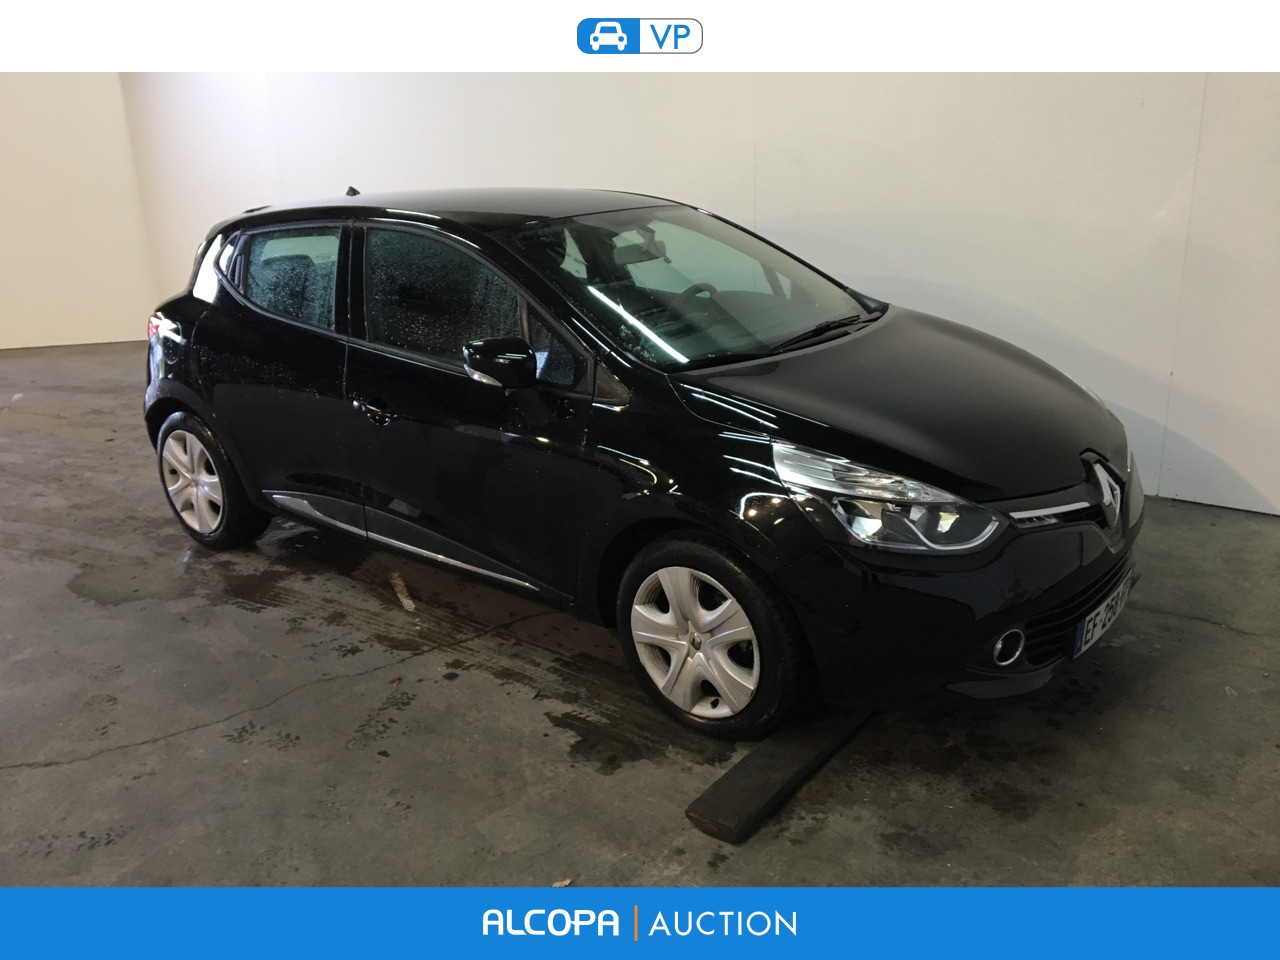 renault clio clio dci 75 energy business 5p tours alcopa auction. Black Bedroom Furniture Sets. Home Design Ideas